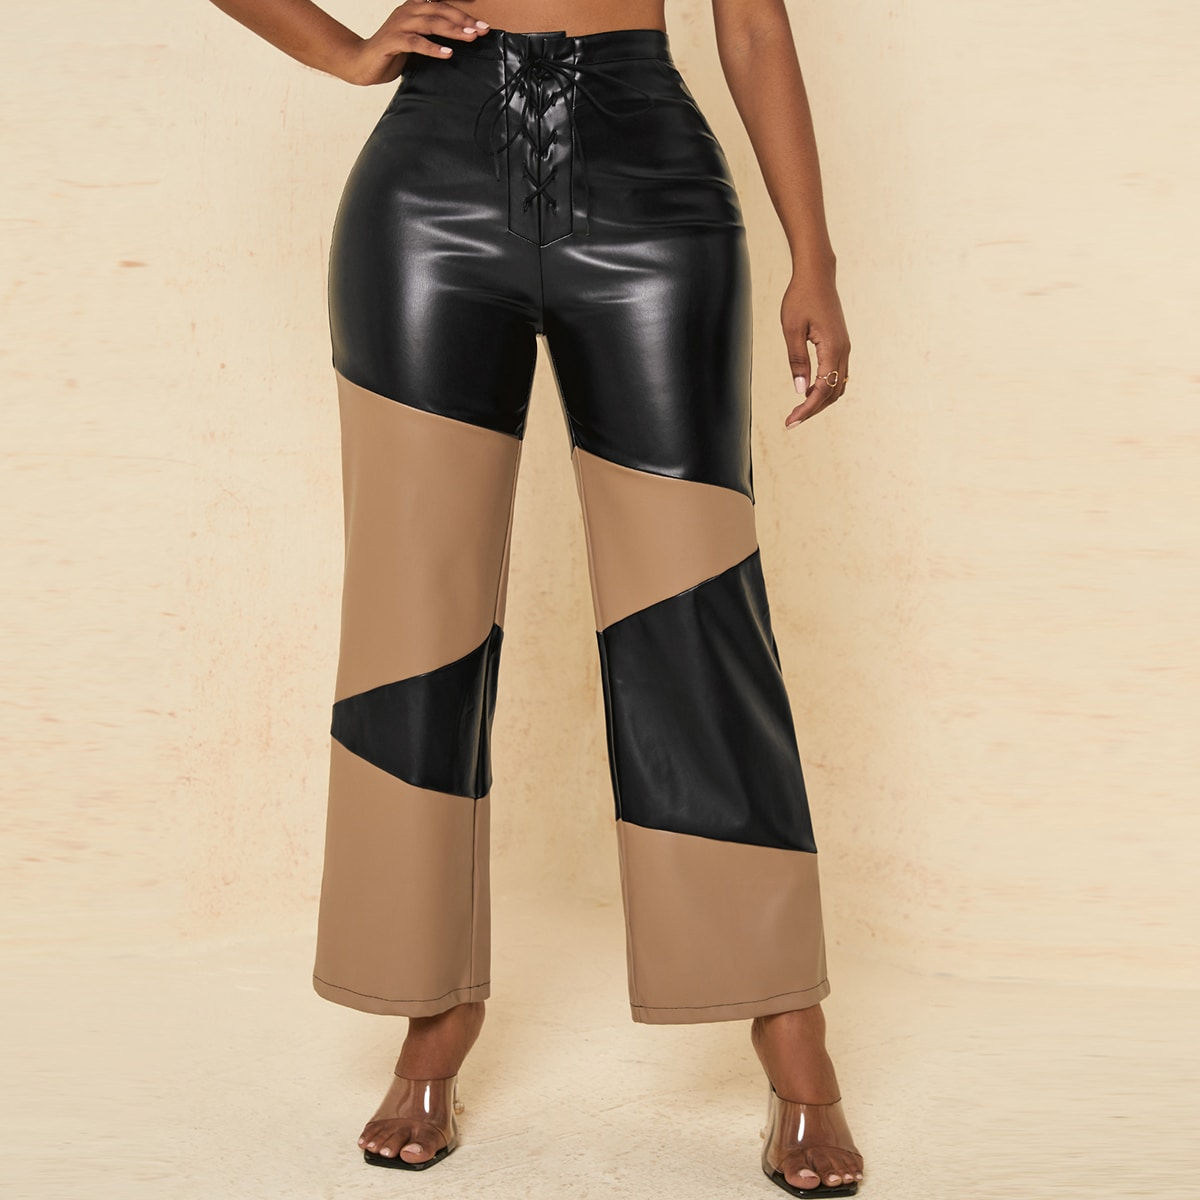 High Waist Two Tone Lace Up Front PU Leather Pants